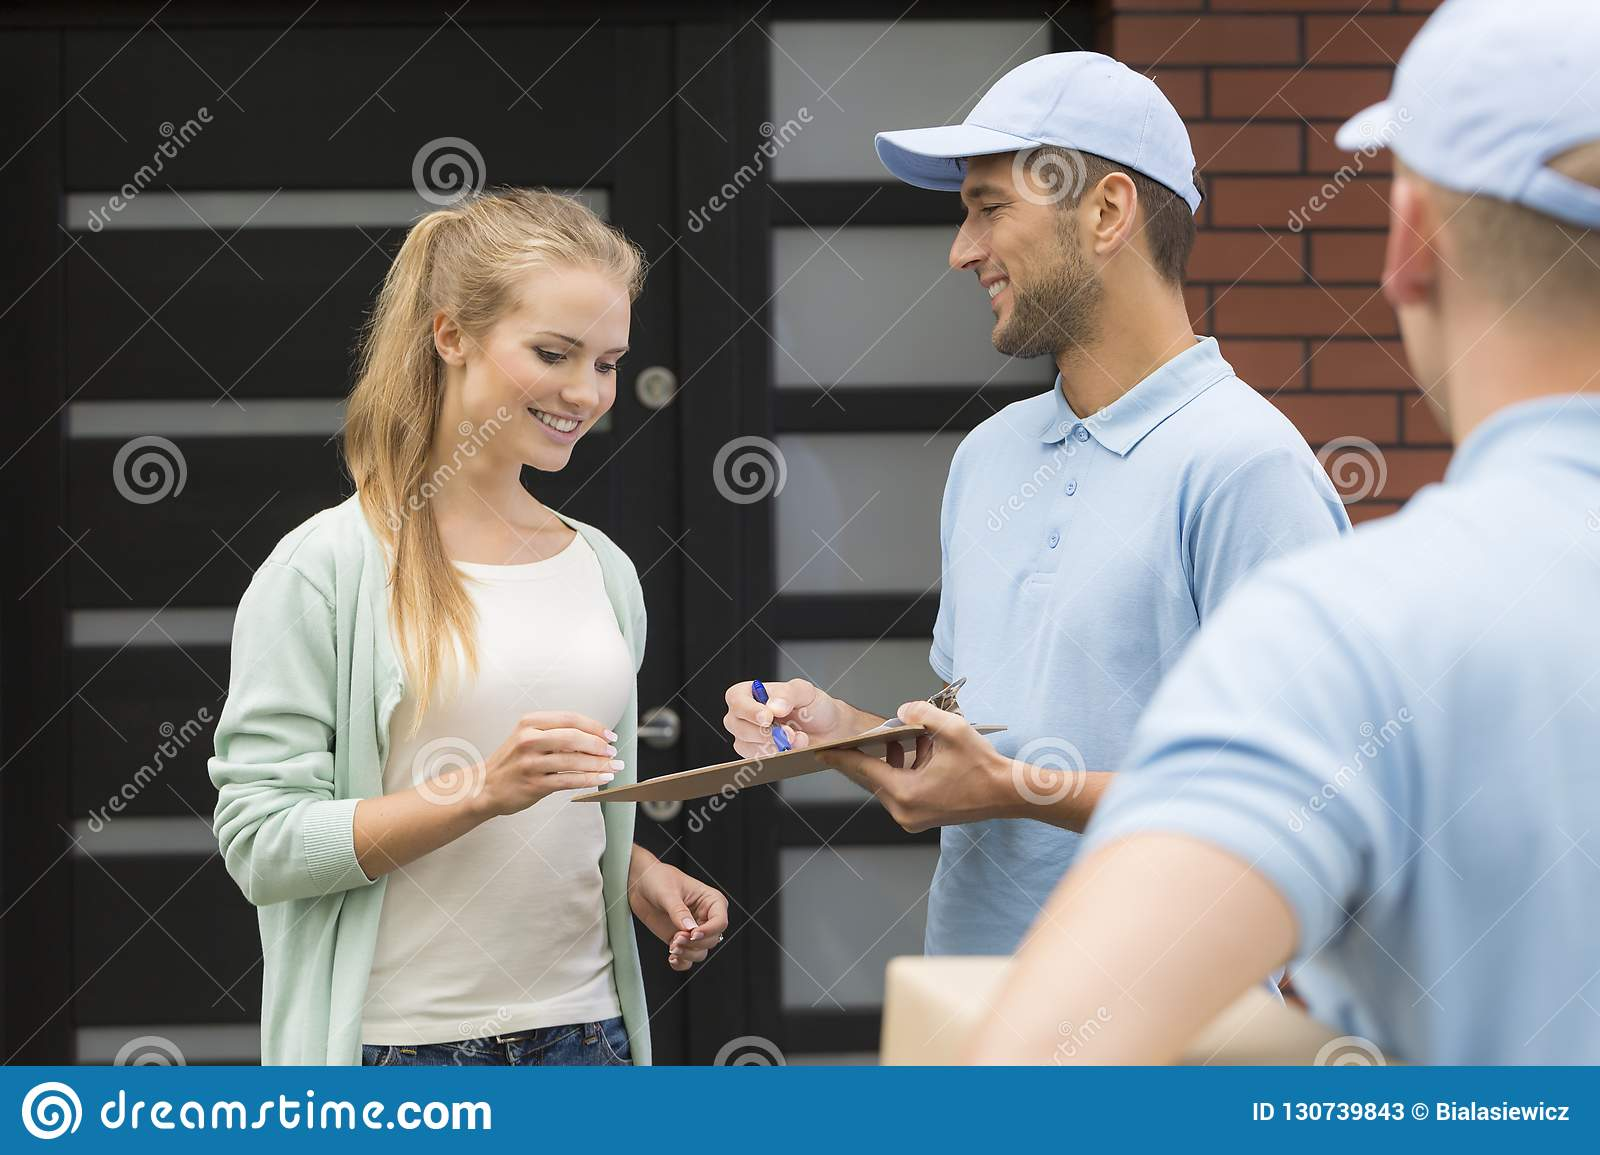 Professional couriers delivering package to smiling woman